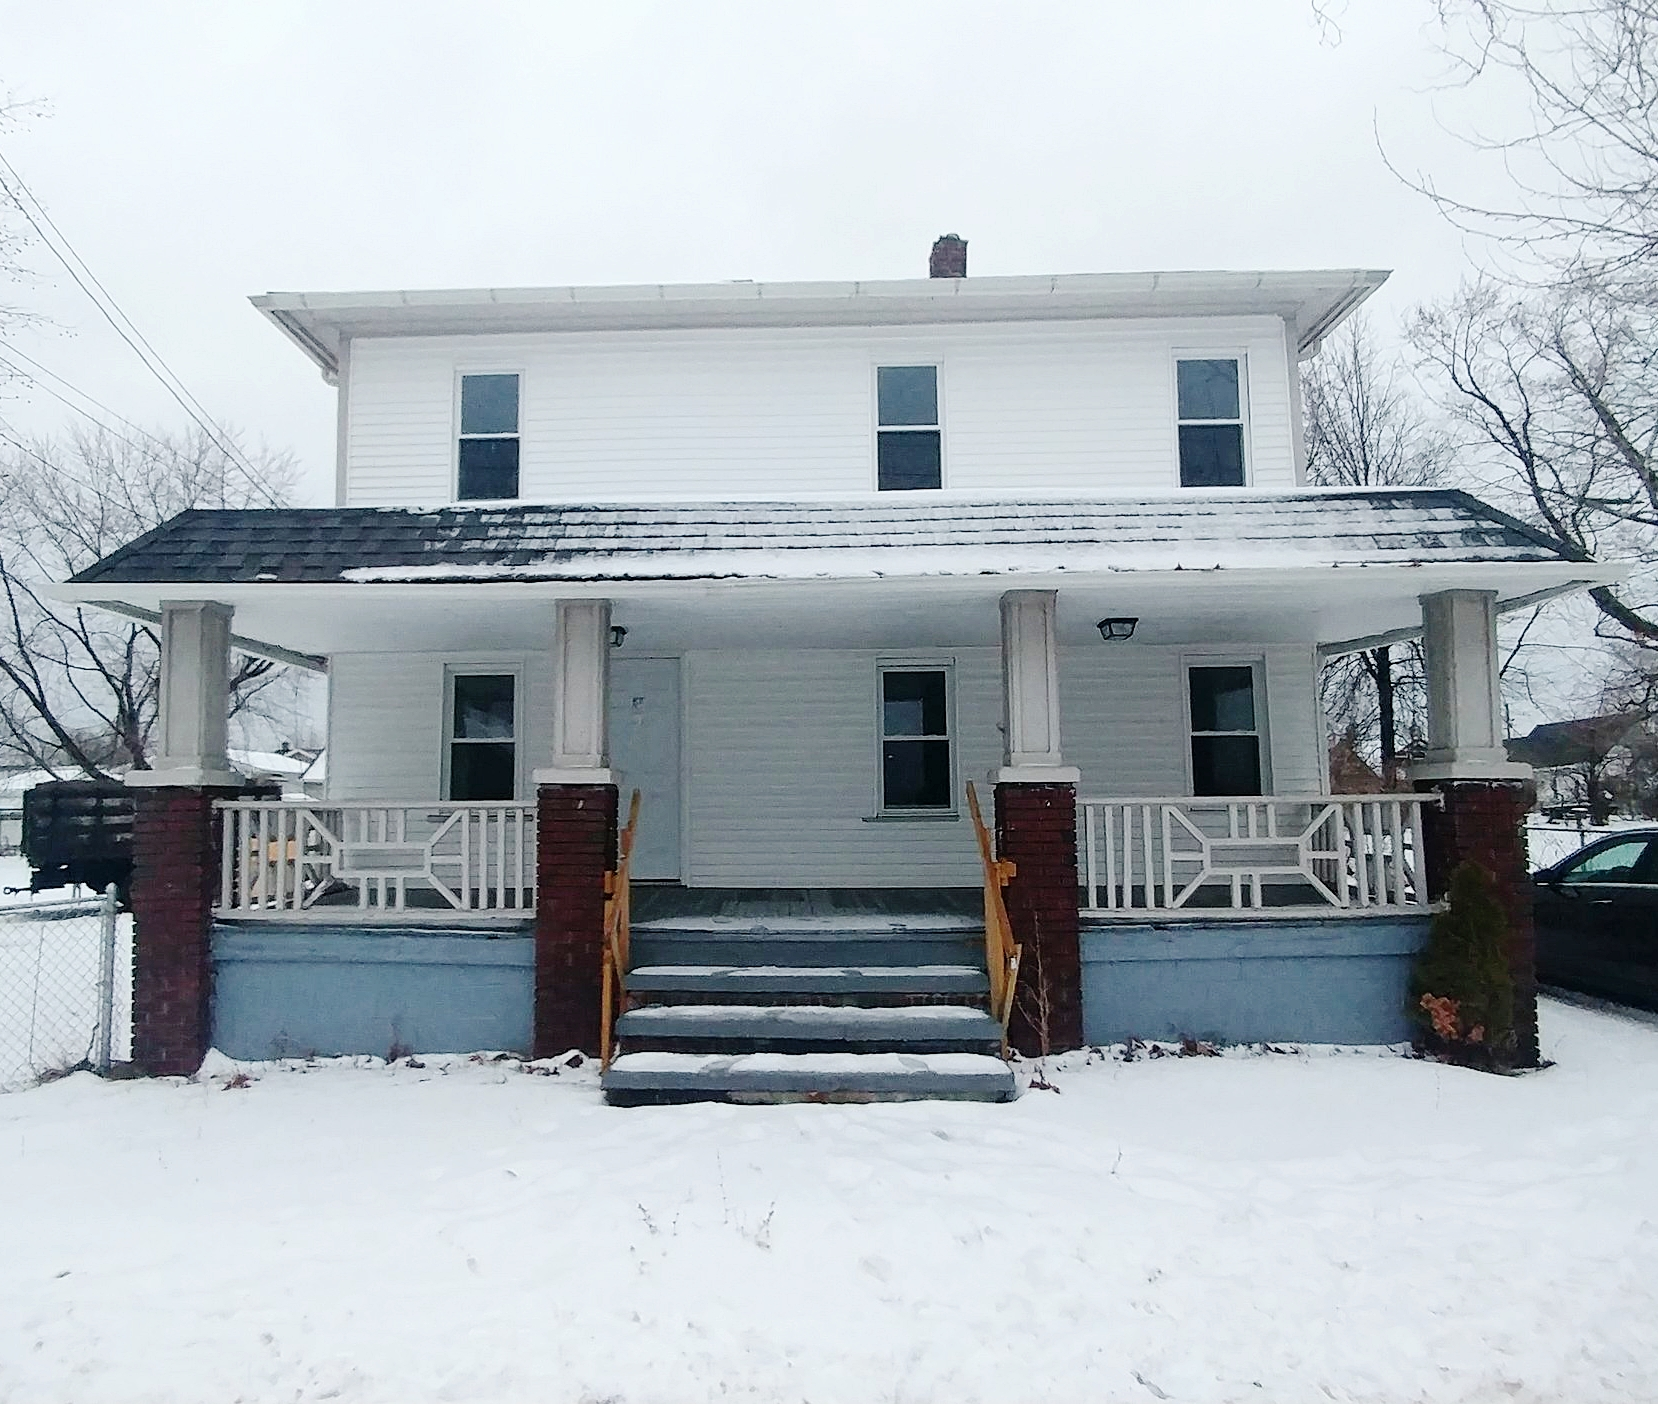 15203 Ohio Ave., Cleveland | 3 bed 1 bath | 1,749 Sq. Ft. | $22,000